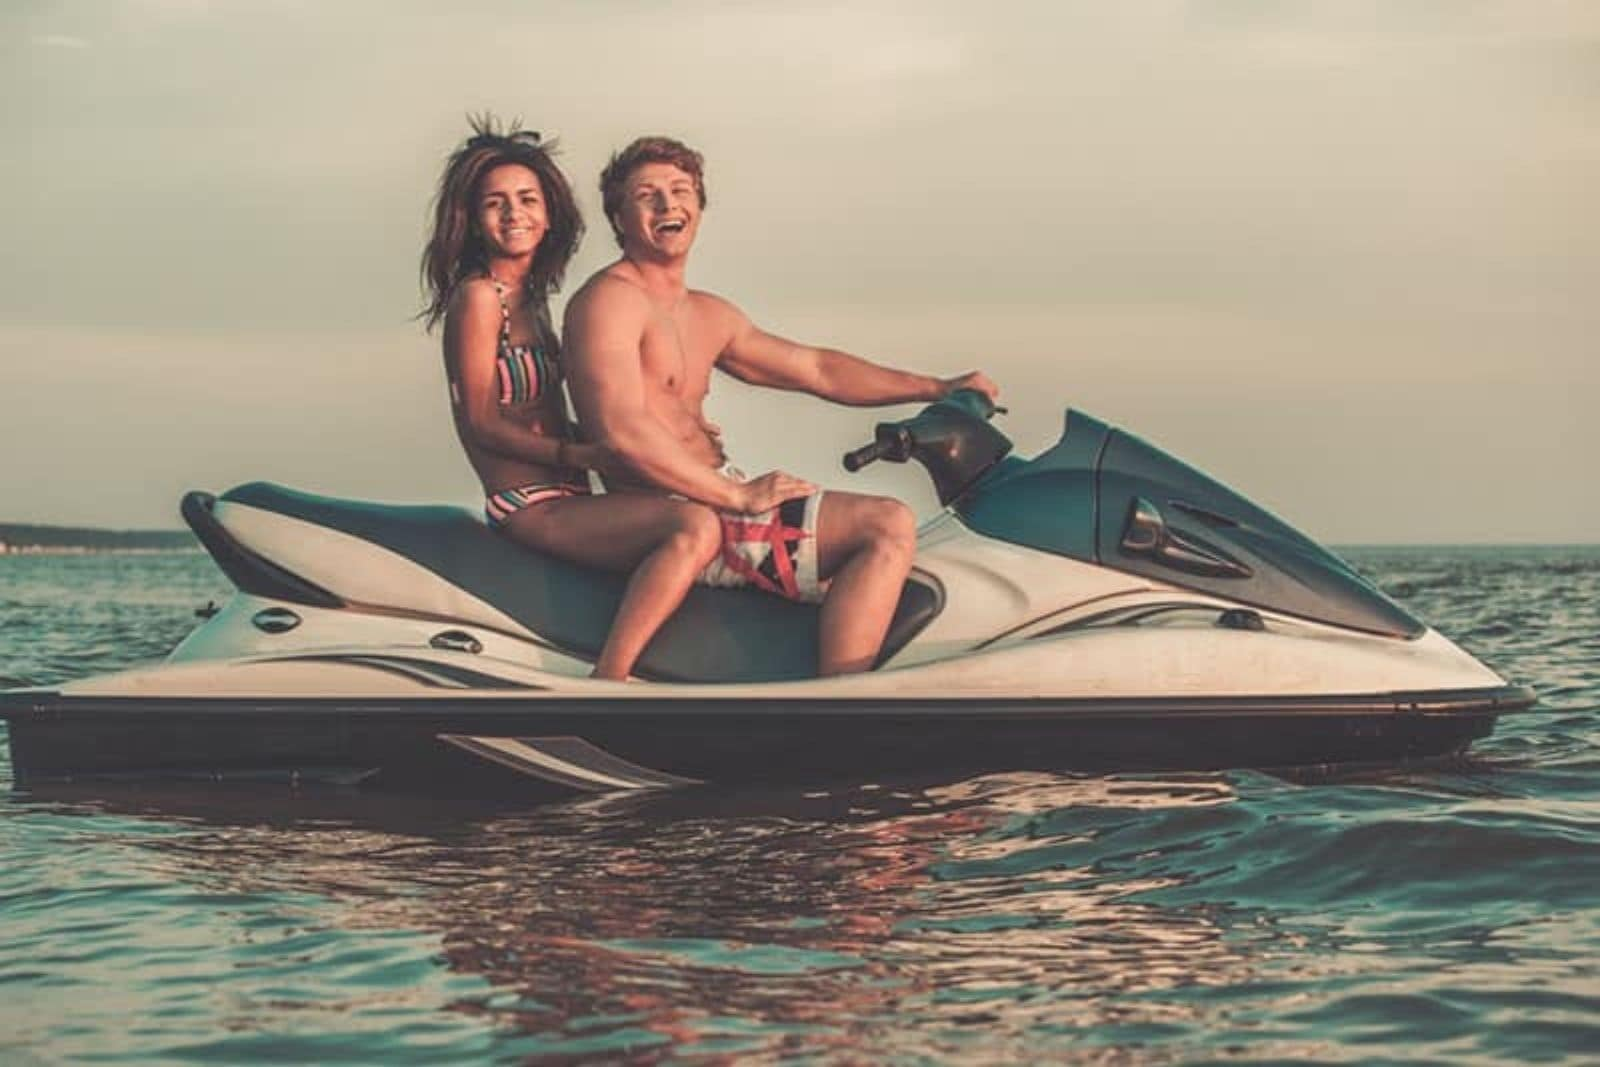 a man and a woman ride on a speedboat